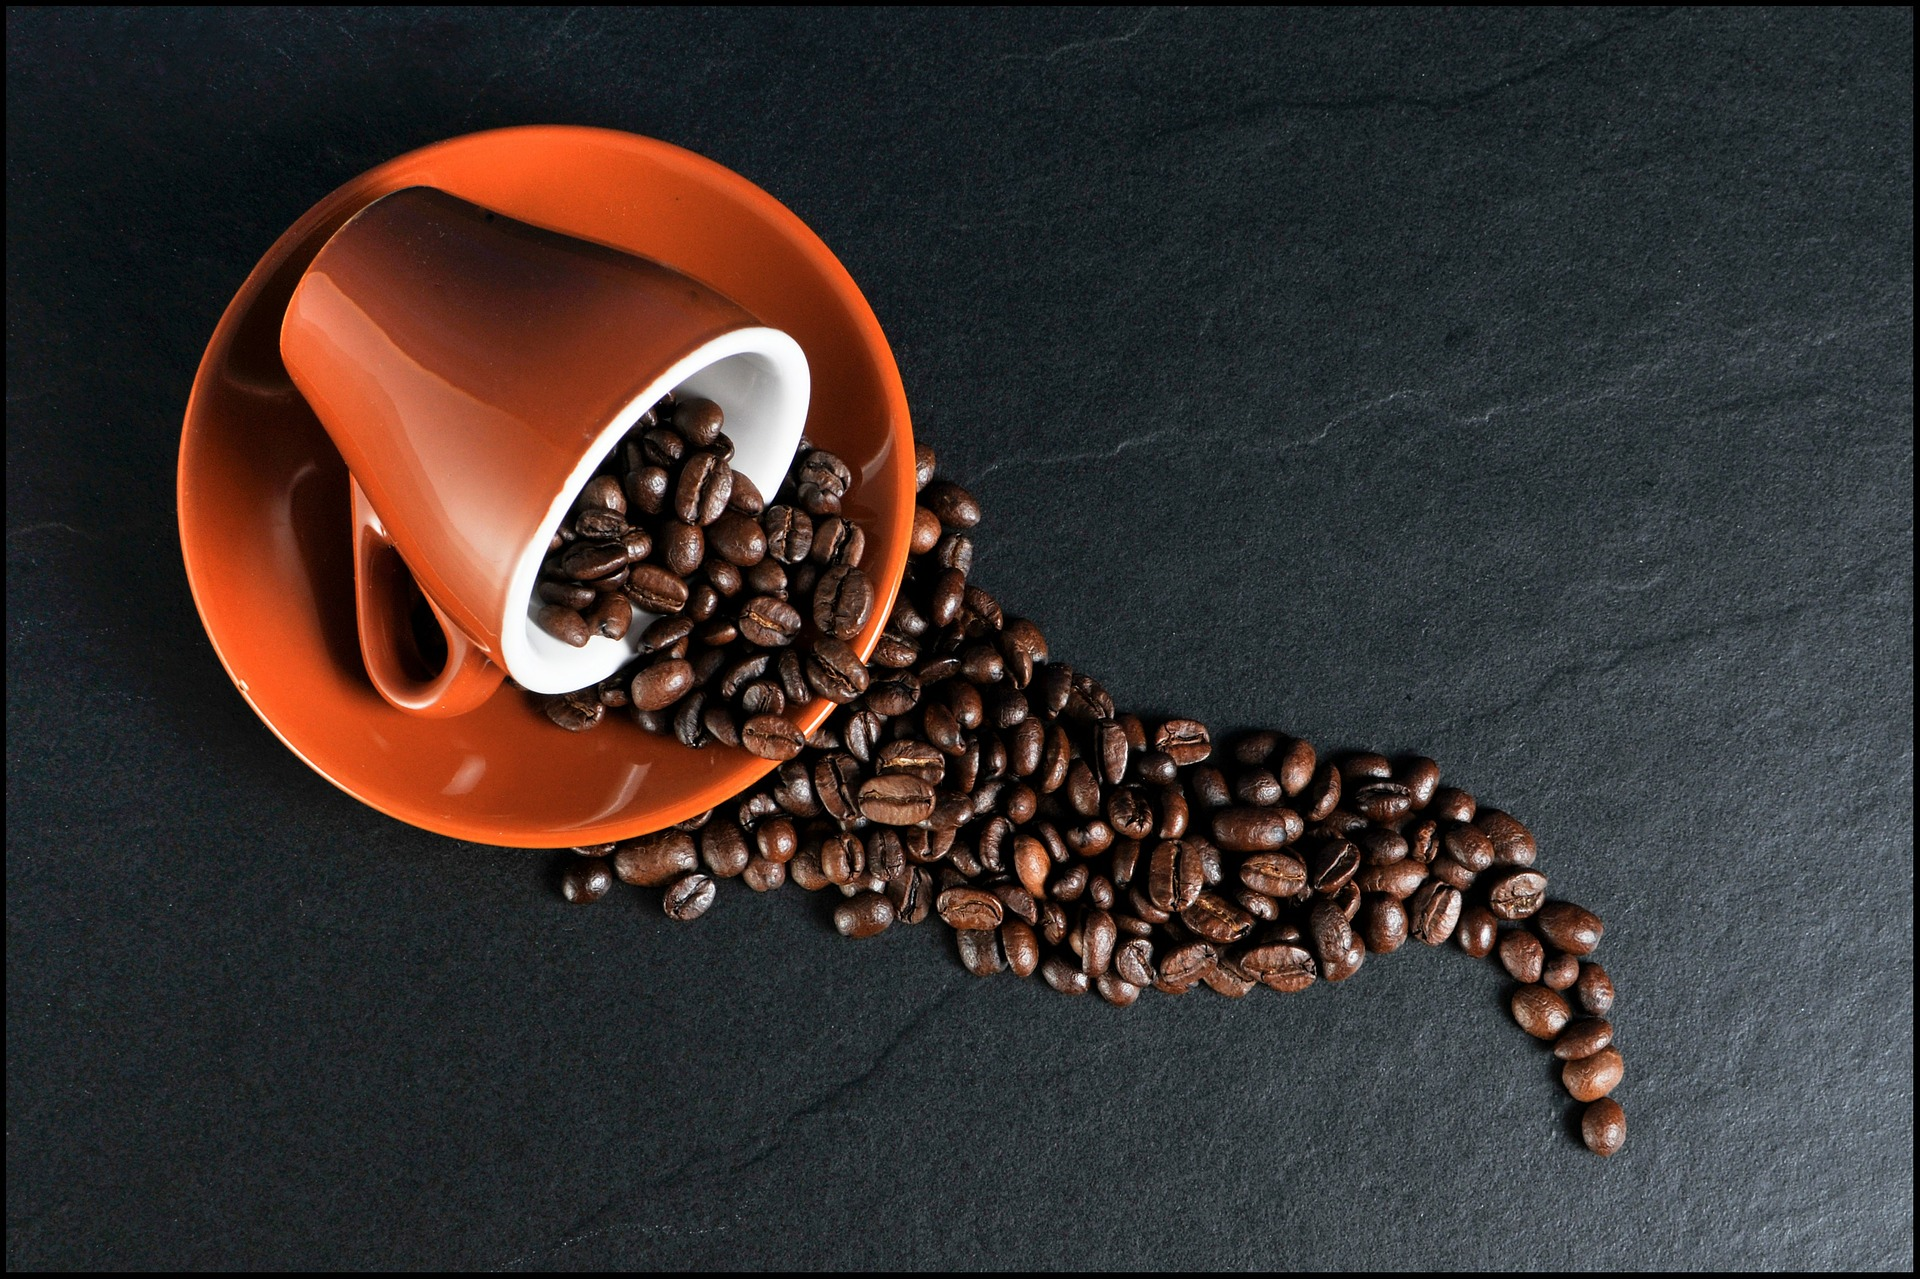 coffee beans spilling out of a mug